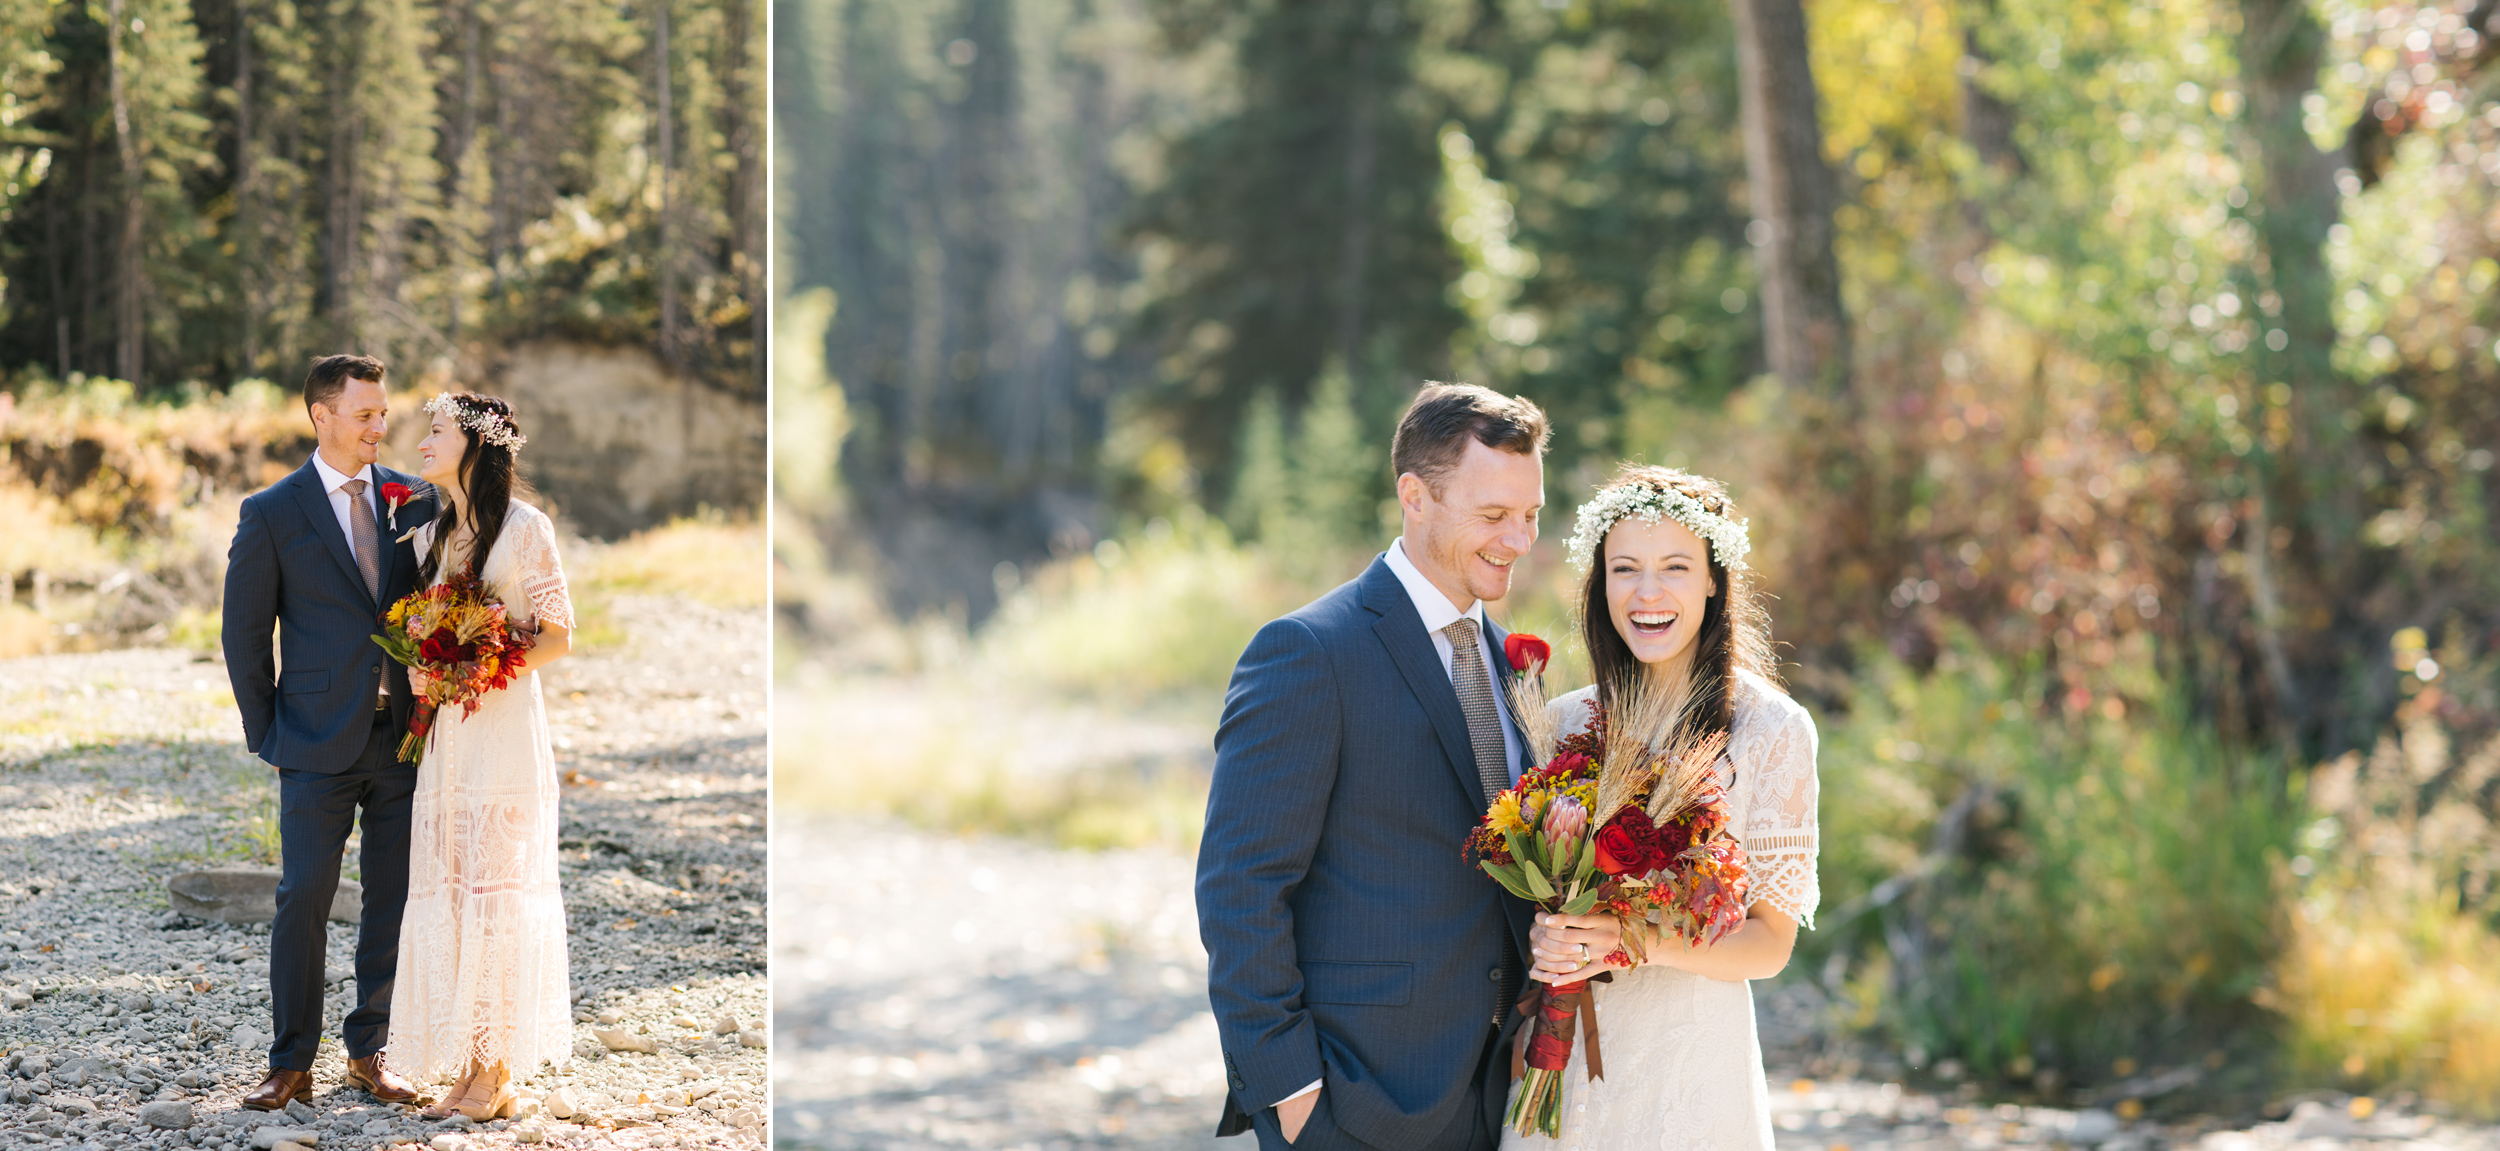 Calgary_Intimate_Backyard_Wedding0018.jpg